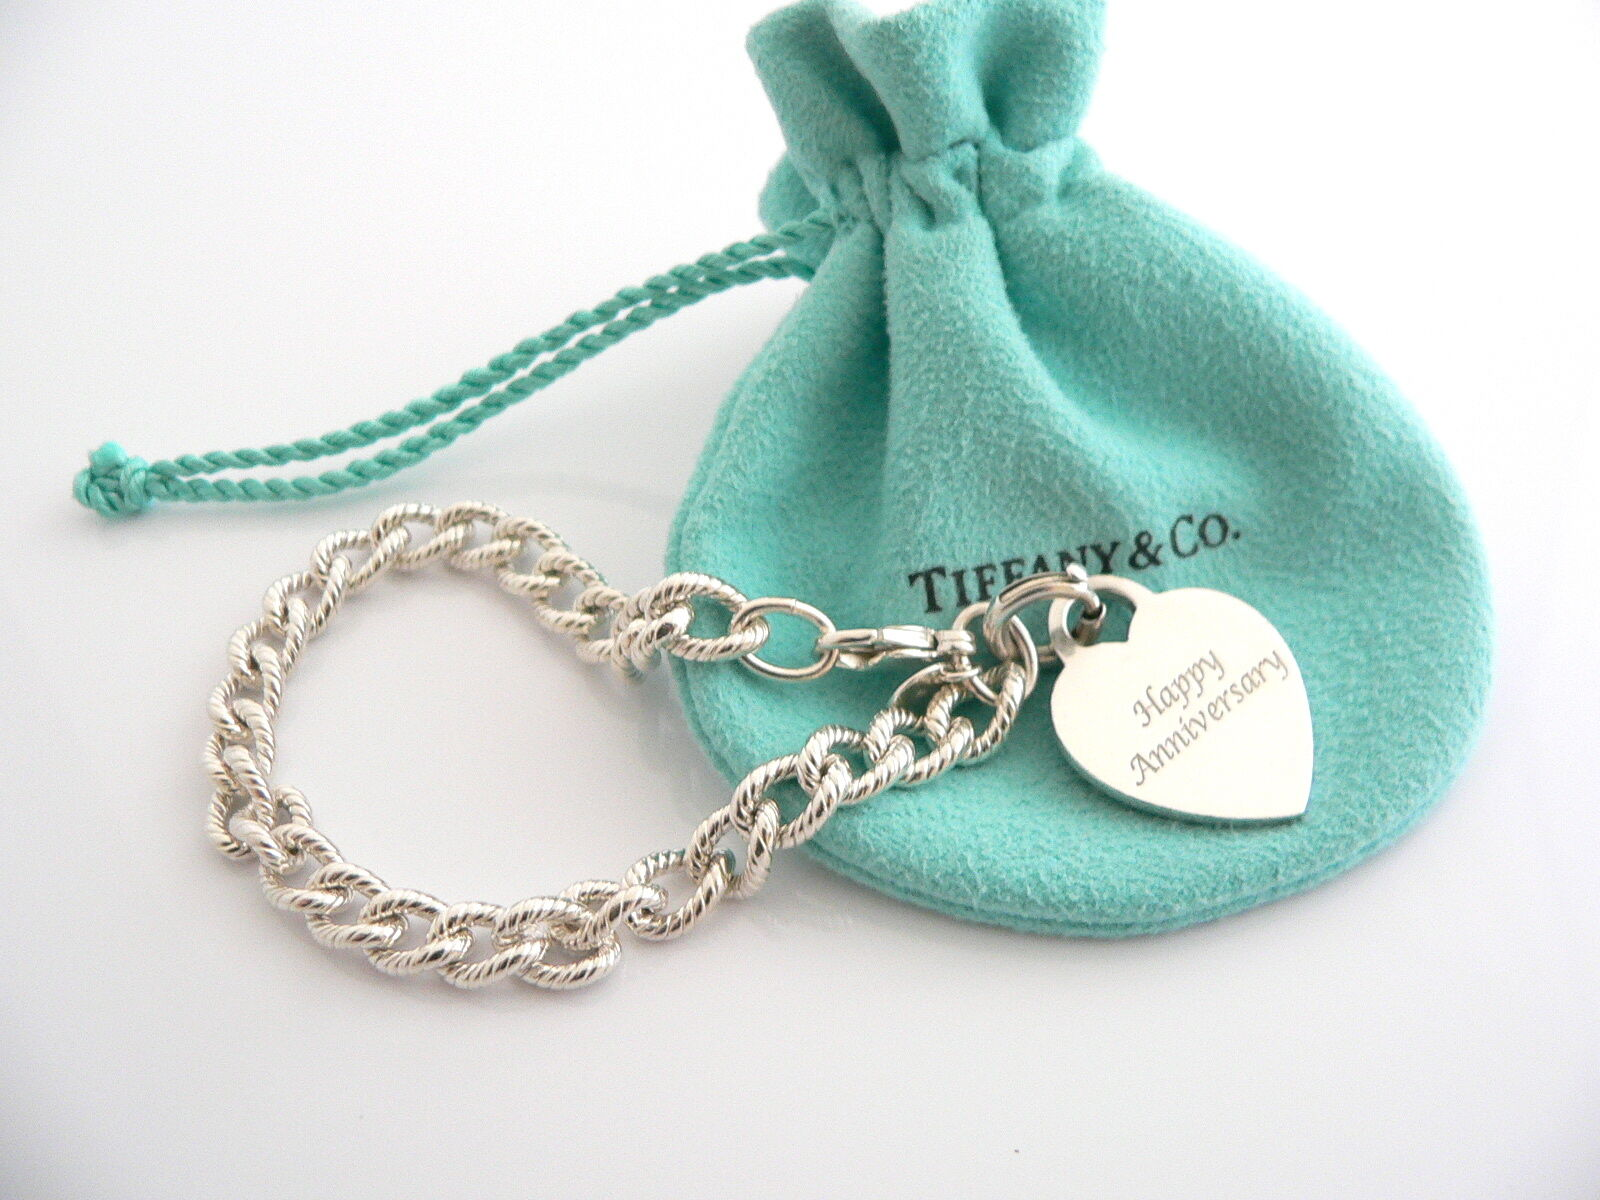 Tiffany & Co Silver HAPPY ANNIVERSARY Heart Charm Pendant Cable Bracelet Pouch